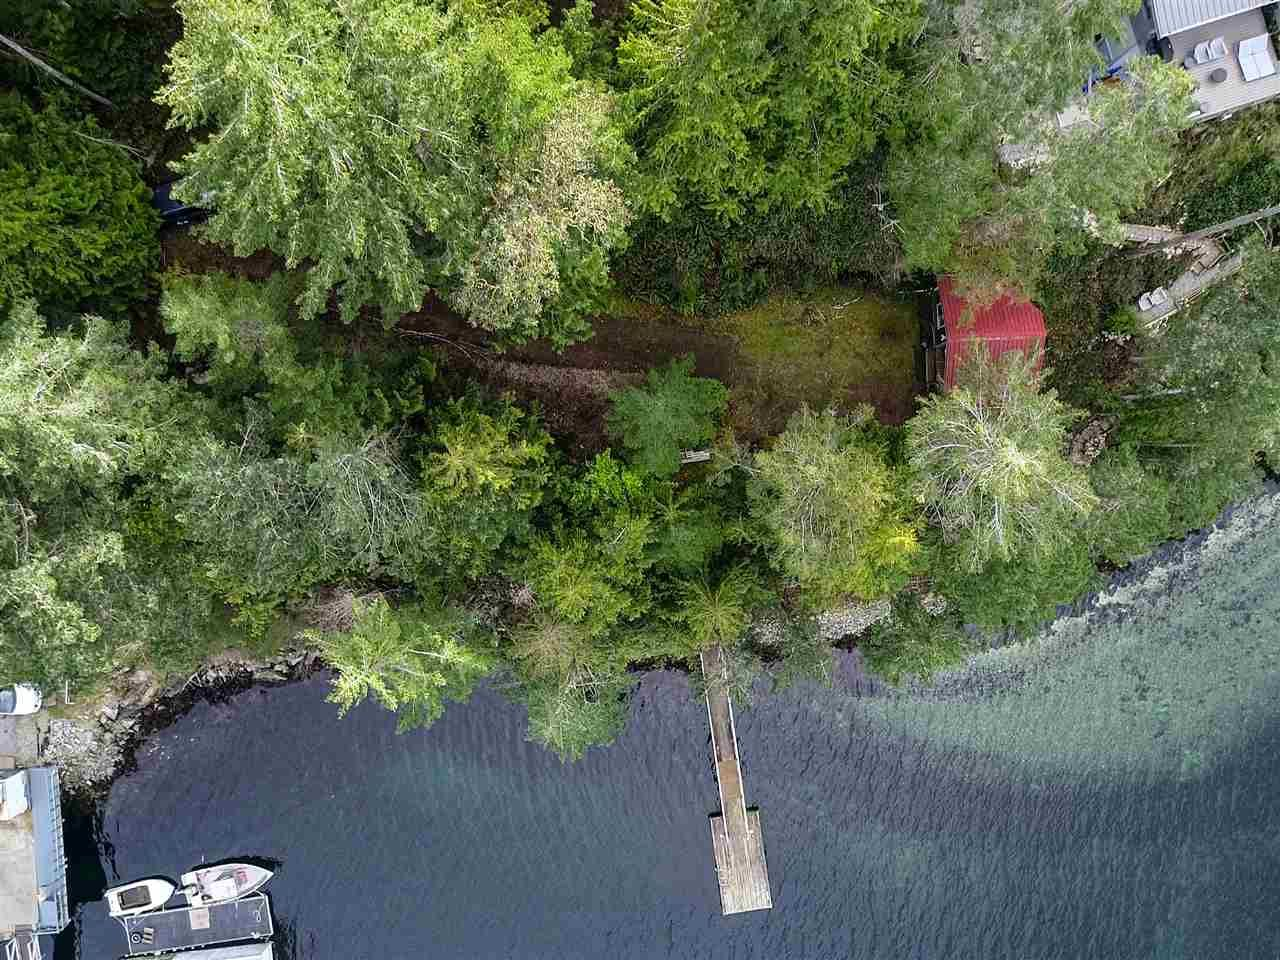 Photo 7: Photos: 4216 FRANCIS PENINSULA Road in Madeira Park: Pender Harbour Egmont House for sale (Sunshine Coast)  : MLS®# R2549311